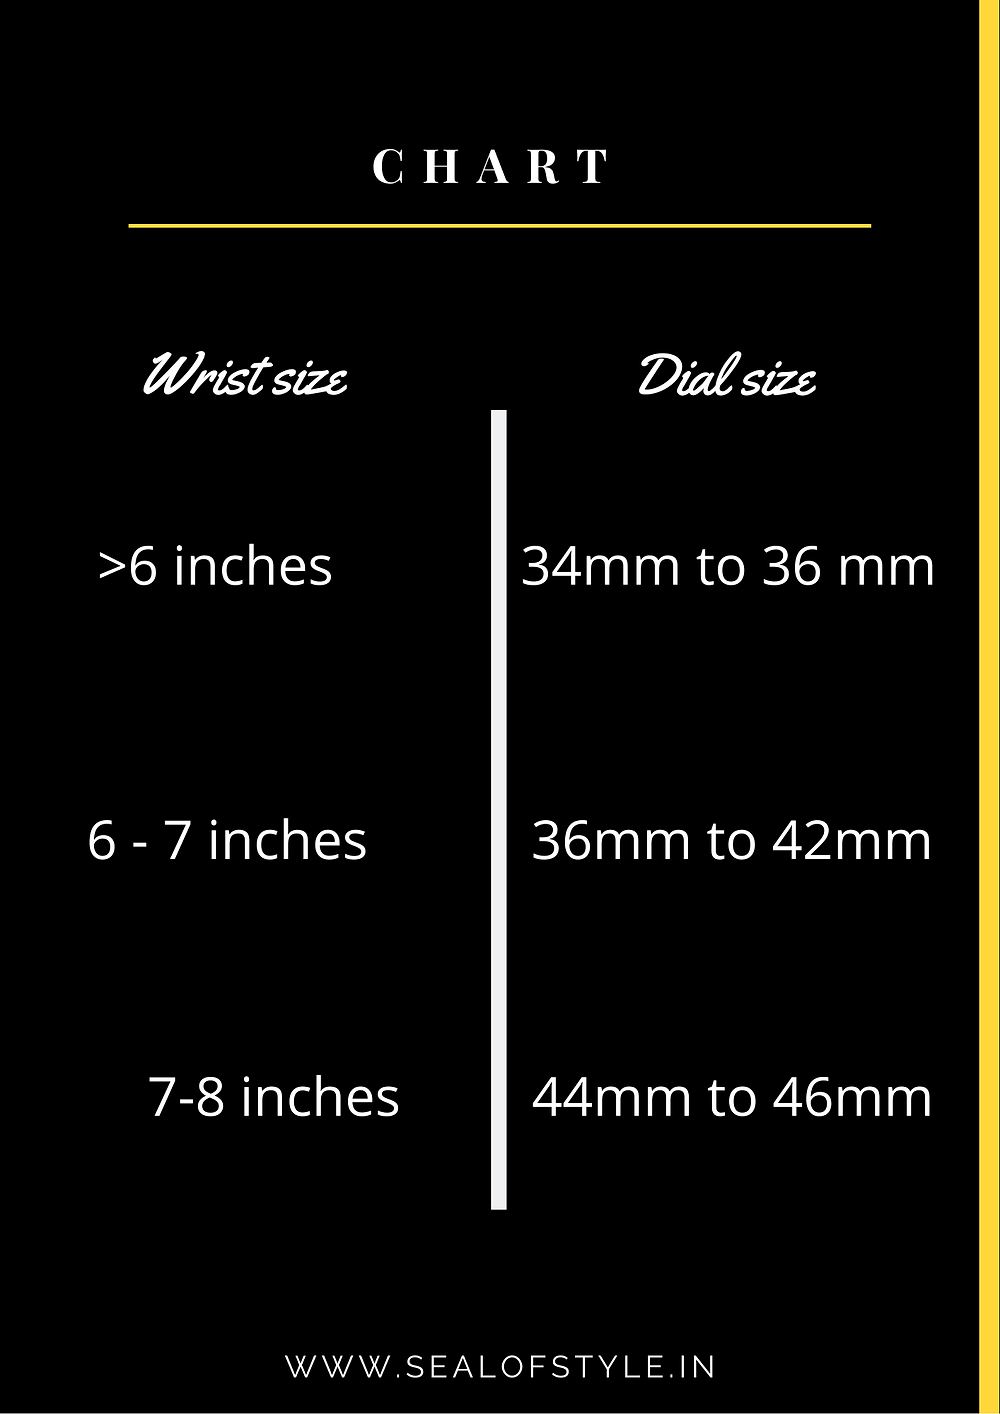 Watch dial size infograph.